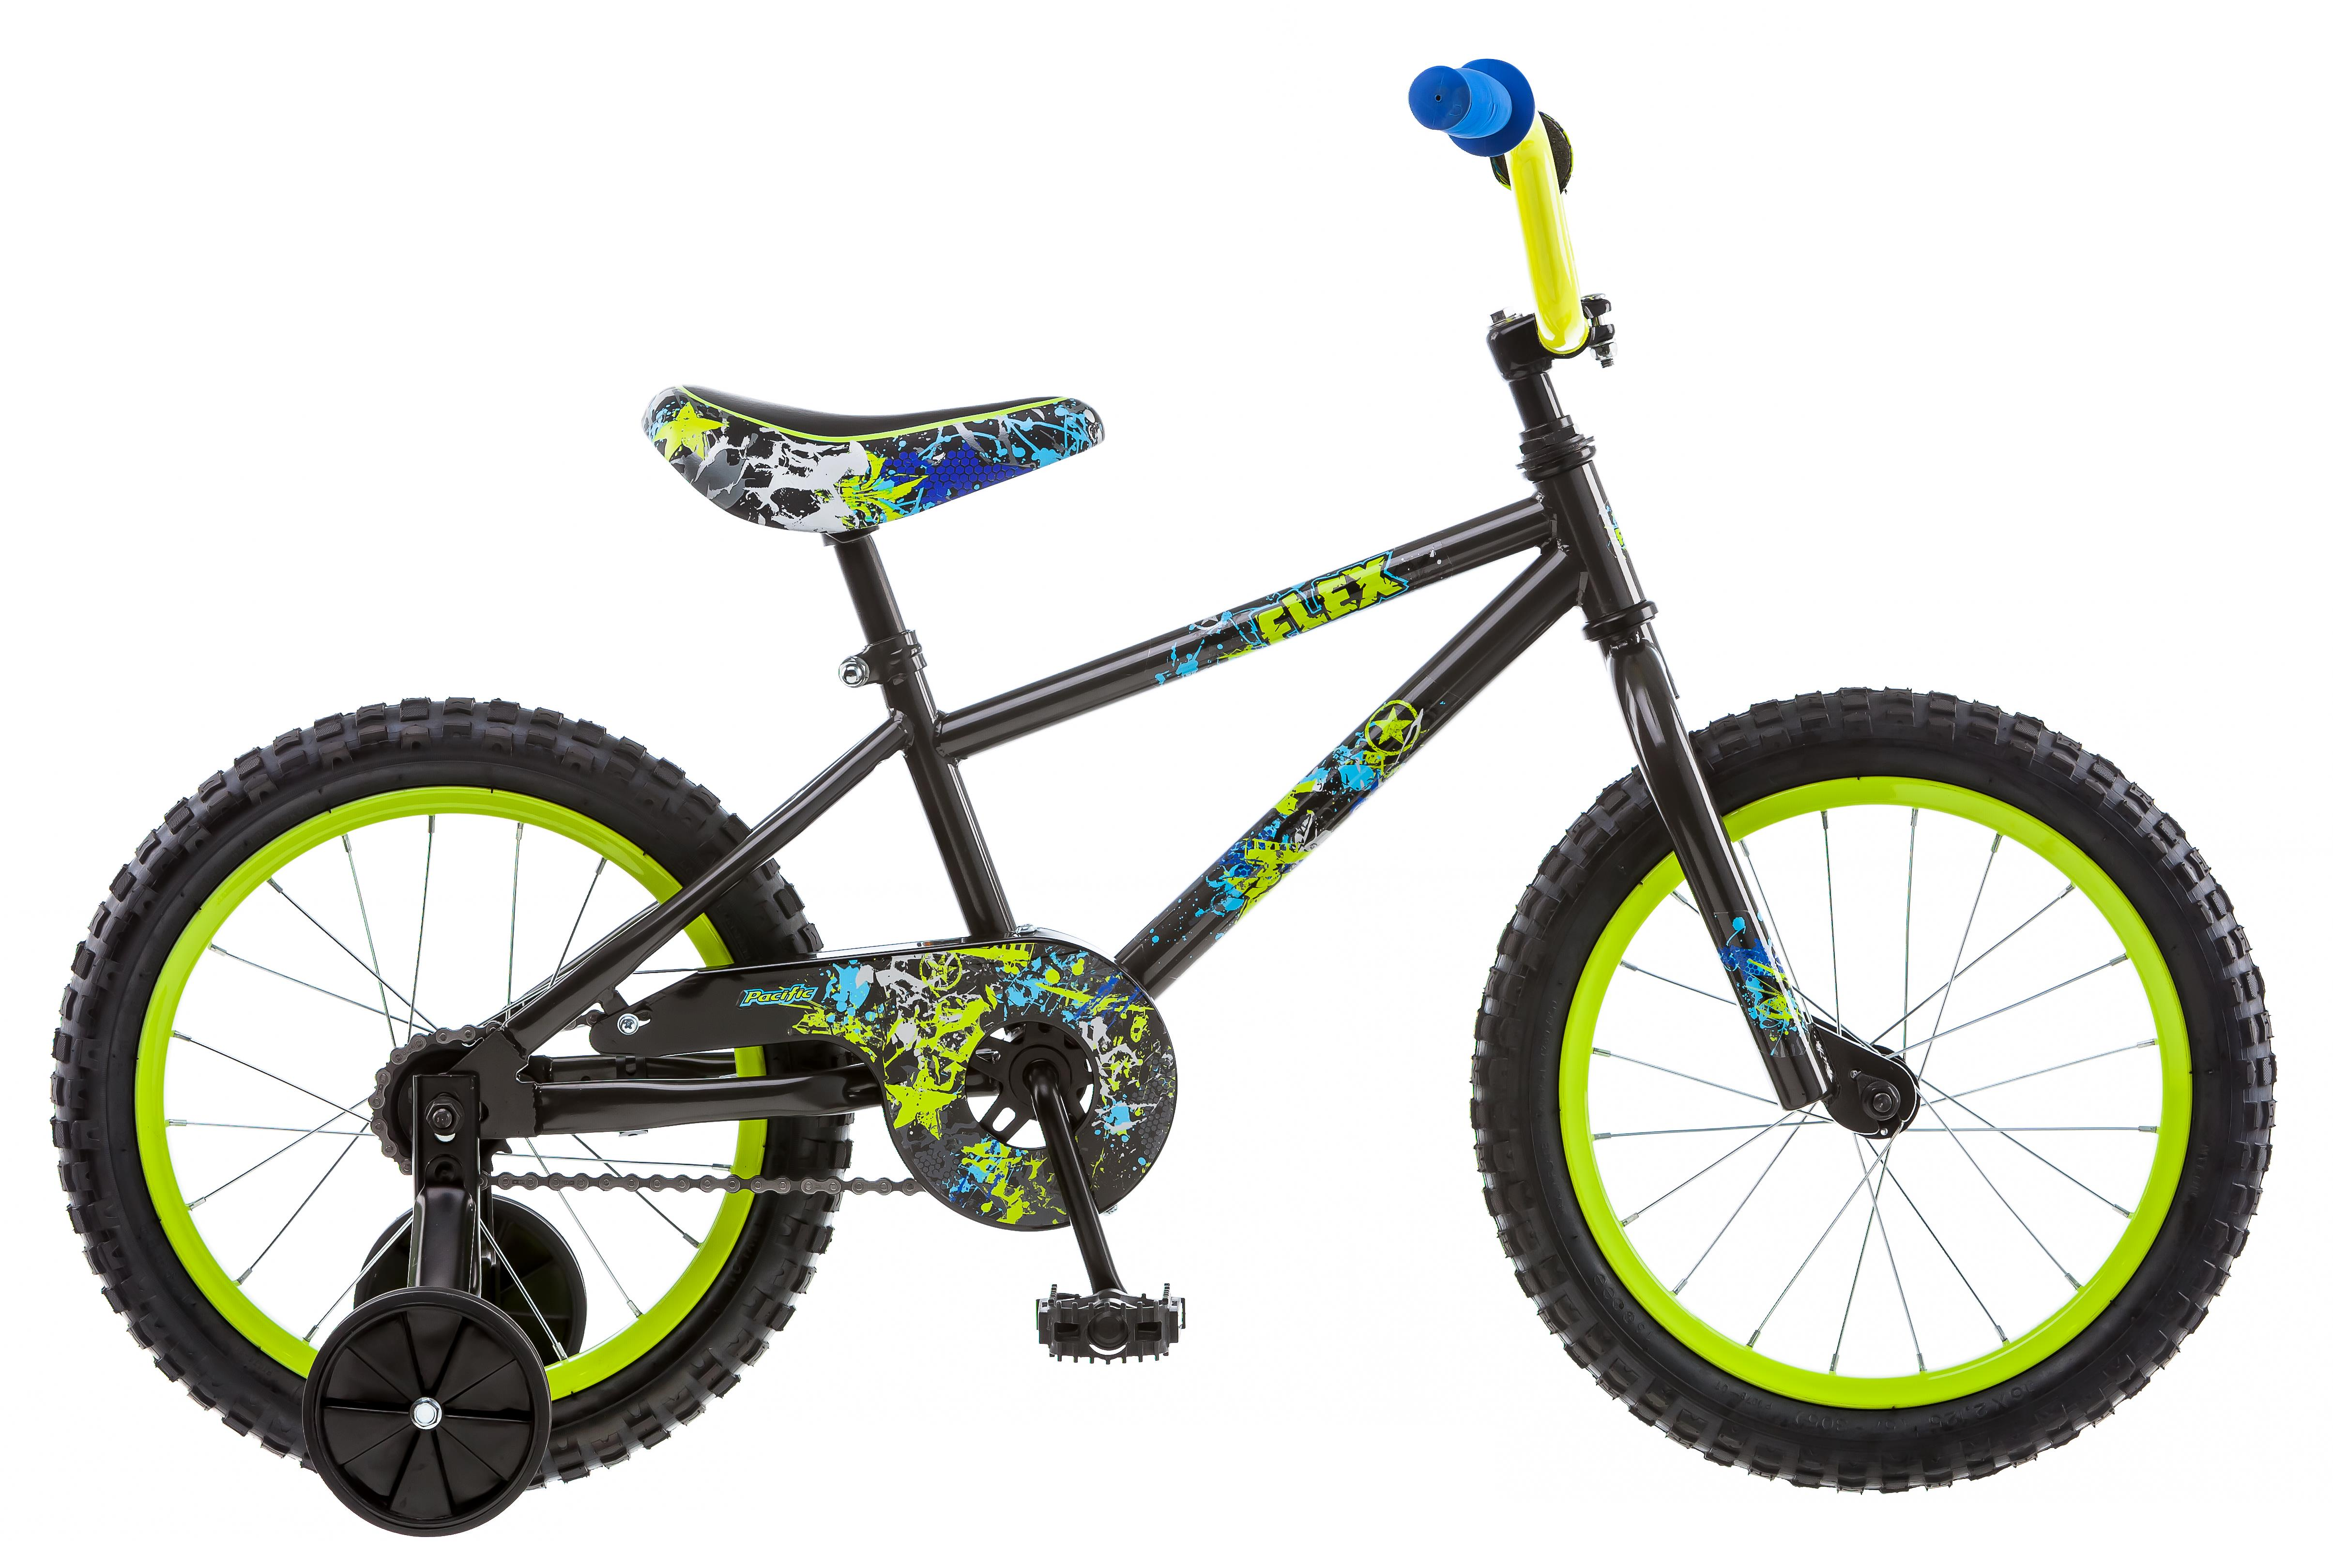 "16"" Boy's Flex Bicycle by Pacific"